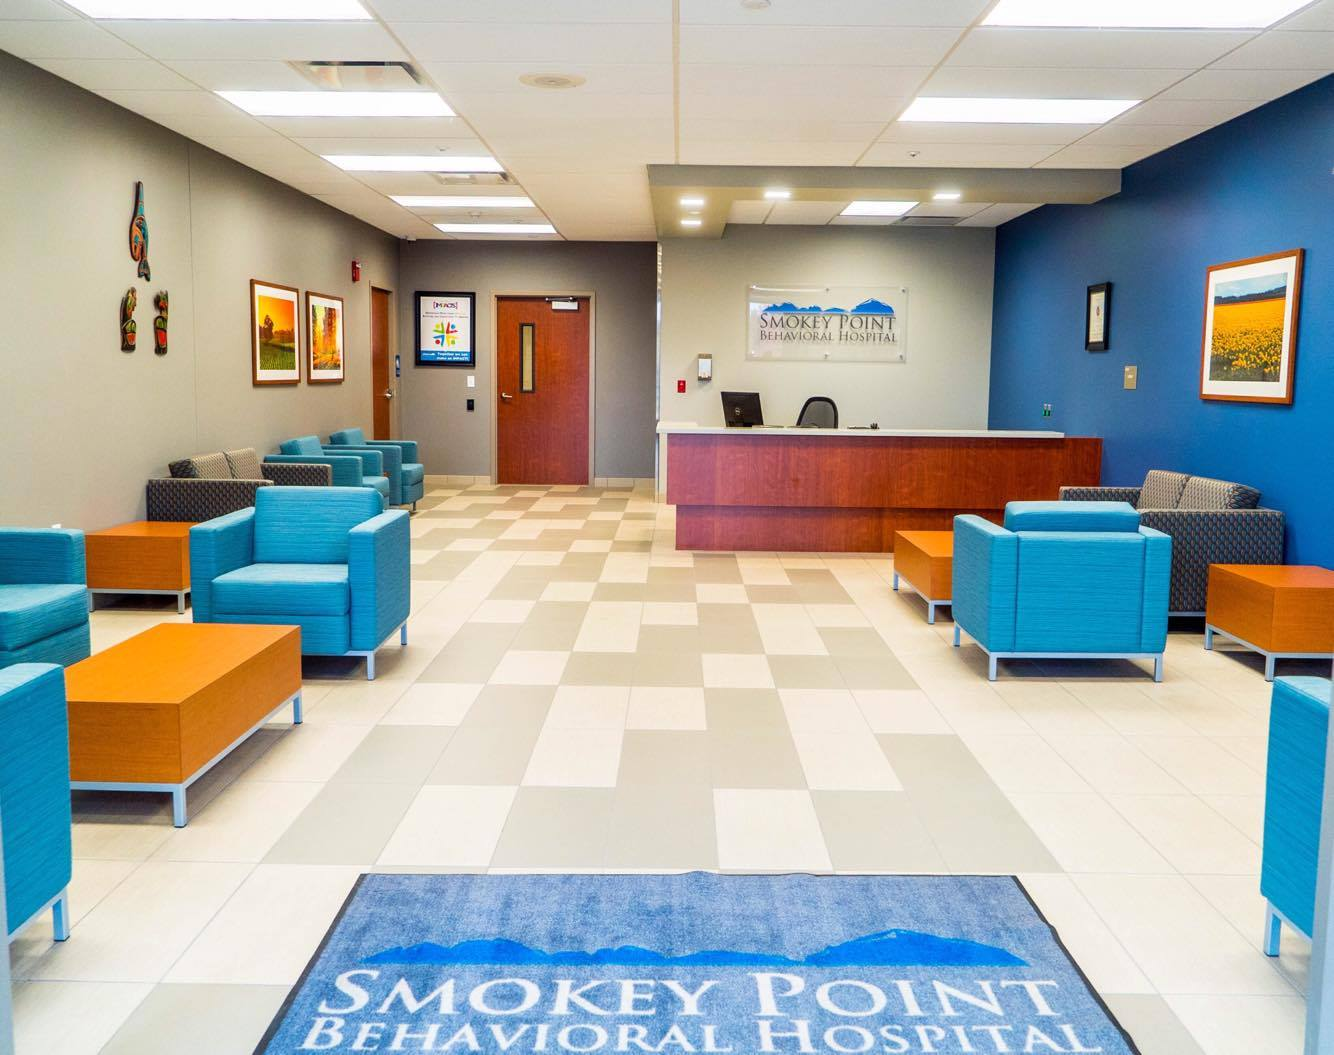 Lobby Main Entrance View for Smokey Point